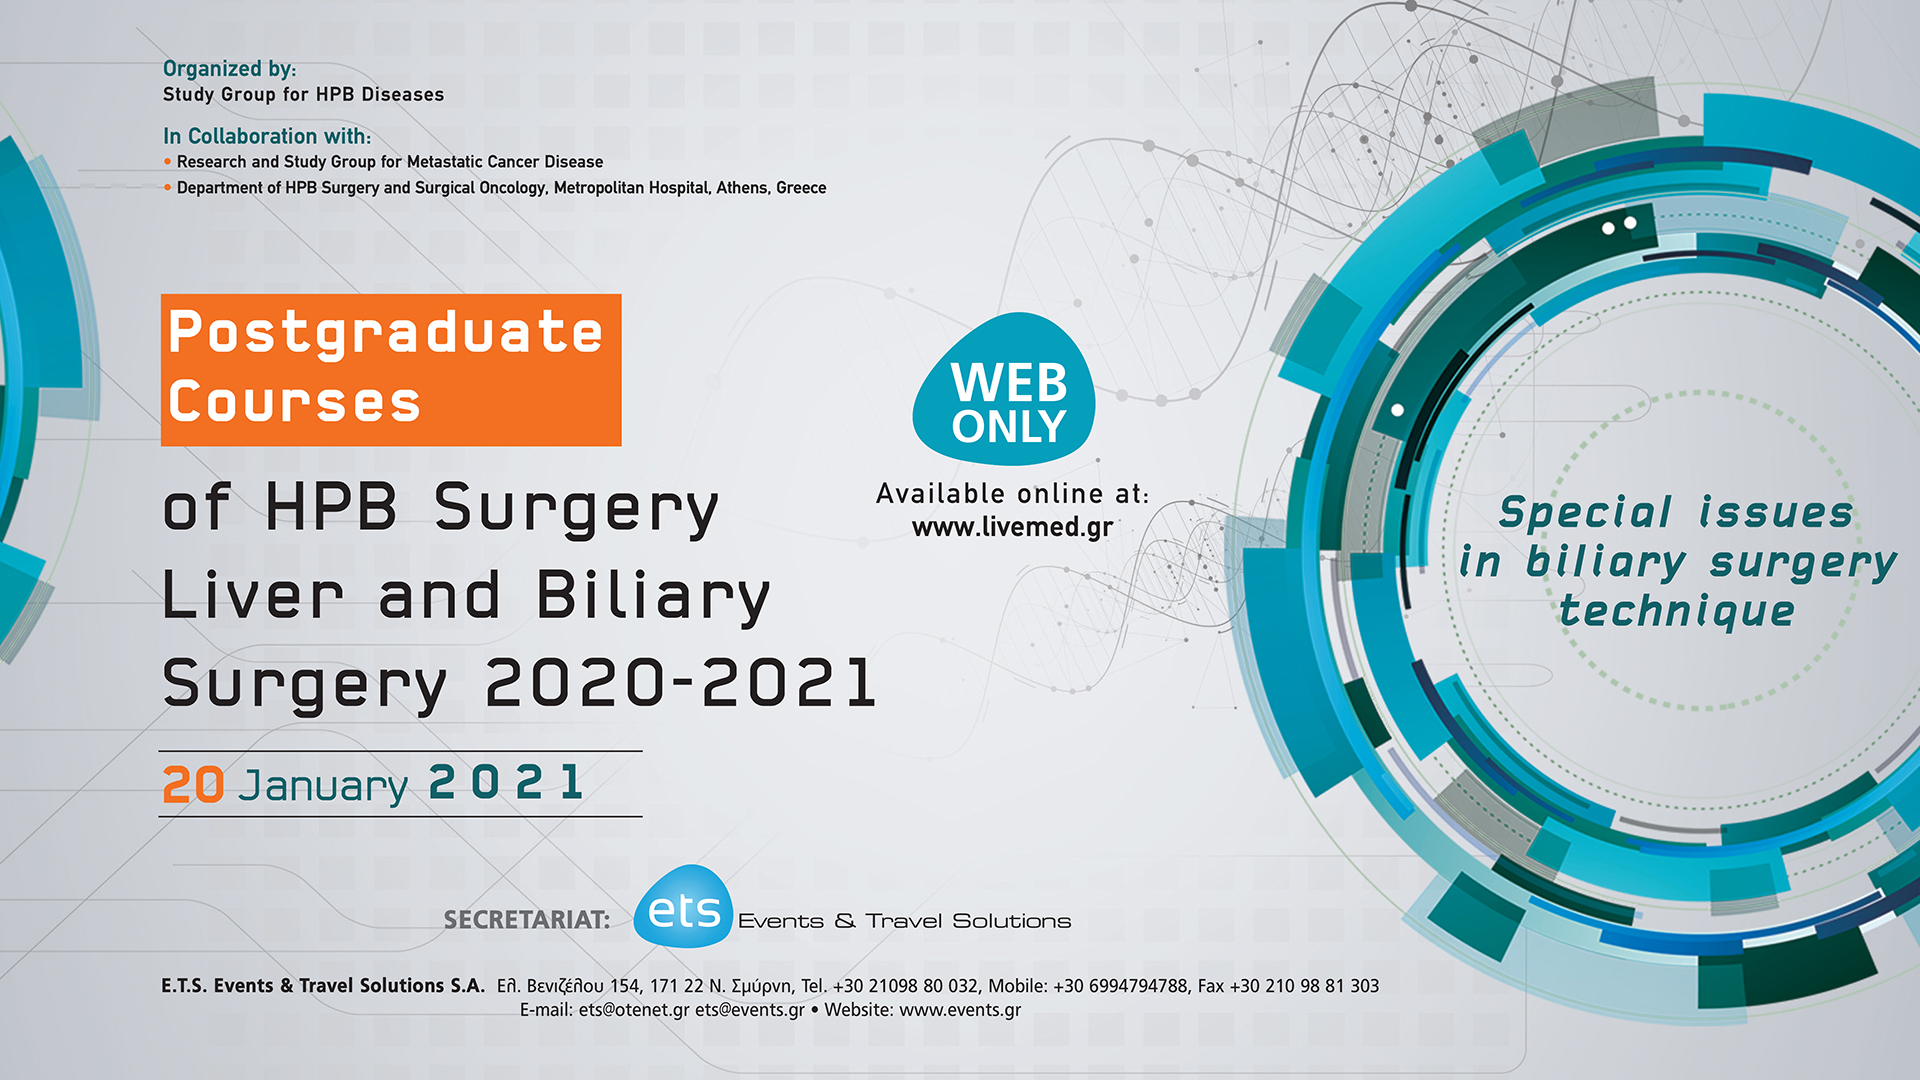 Postgraduate Courses of HPB Surgery Liver and Biliary Surgery 2020-2021 - Special Issues on biliary surgery technique